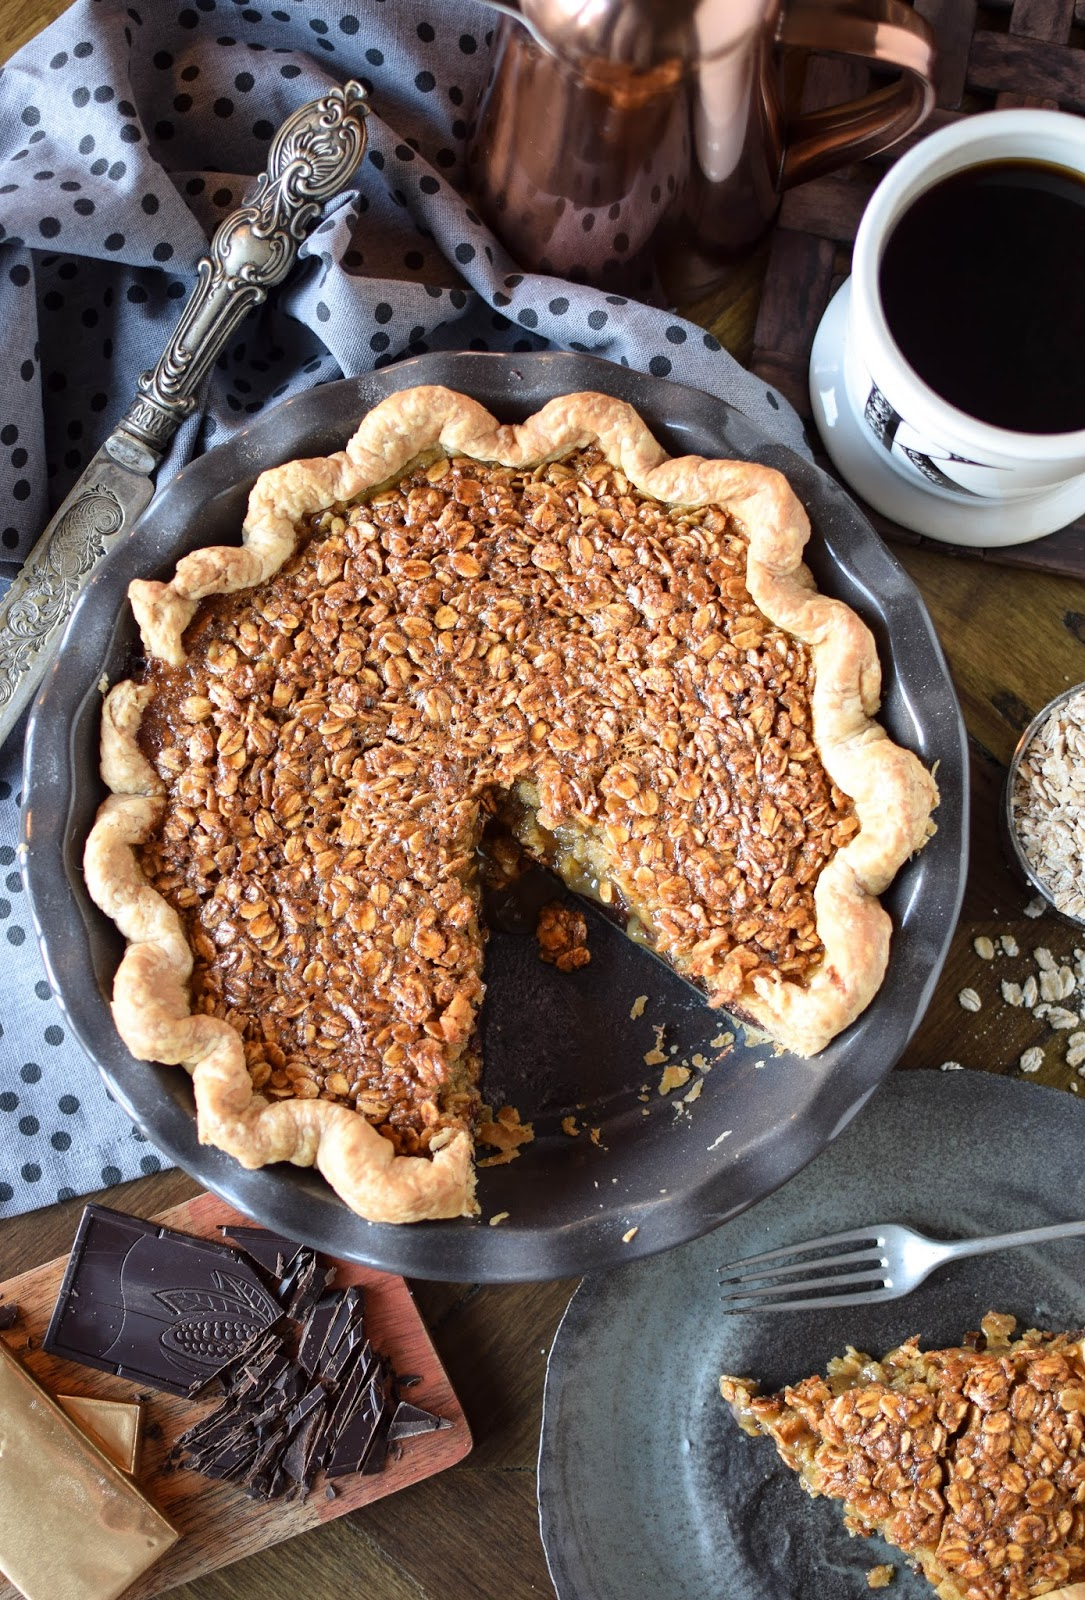 Often referred to as poor mans pecan pie this black bottomed oatmeal pie is a bit easier on the pockets that it's nutty sibling.  A layer of chocolate ganache topped with a syrupy oatmeal filling sitting in a buttery crust makes this a truly rich and decadent dessert. There's nothing poor about this pie.